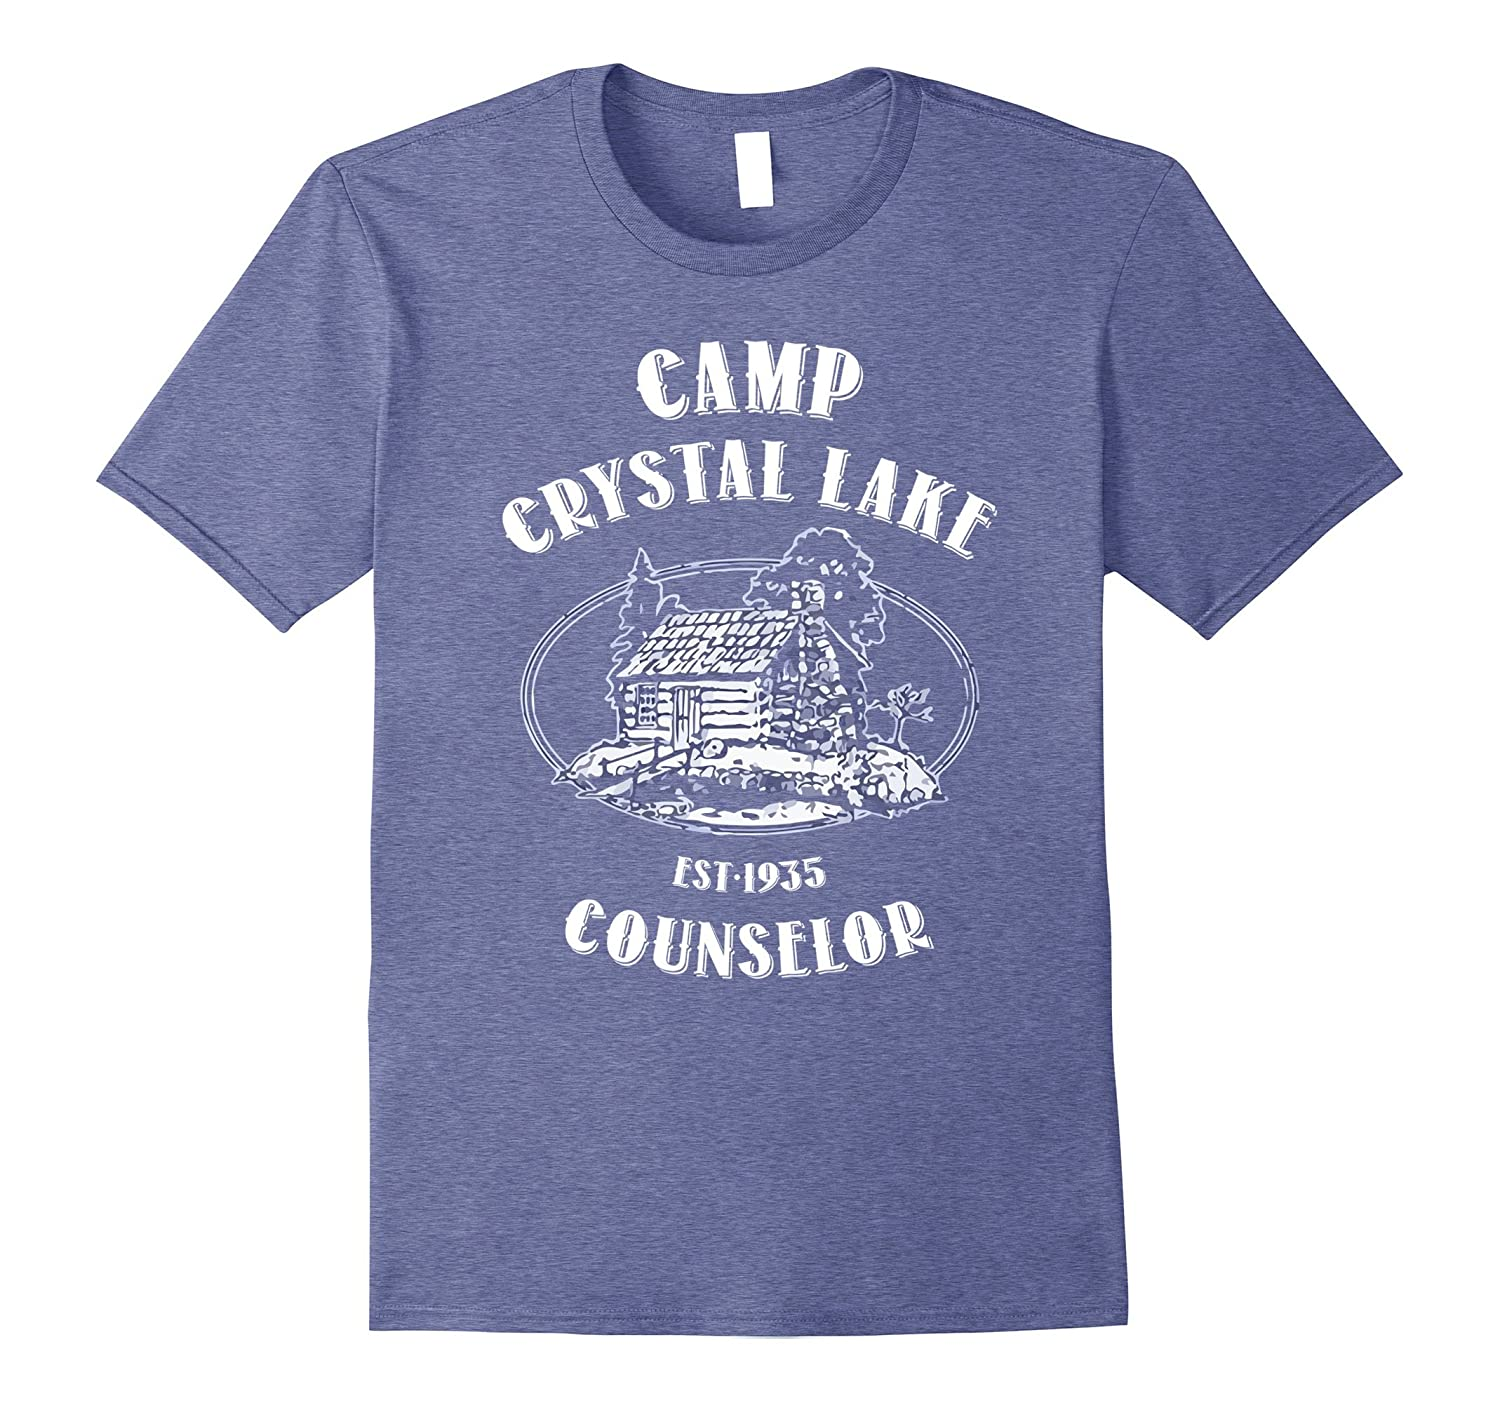 Camp shirts gifts Crystal Lake Counselor Vintage retro style-FL